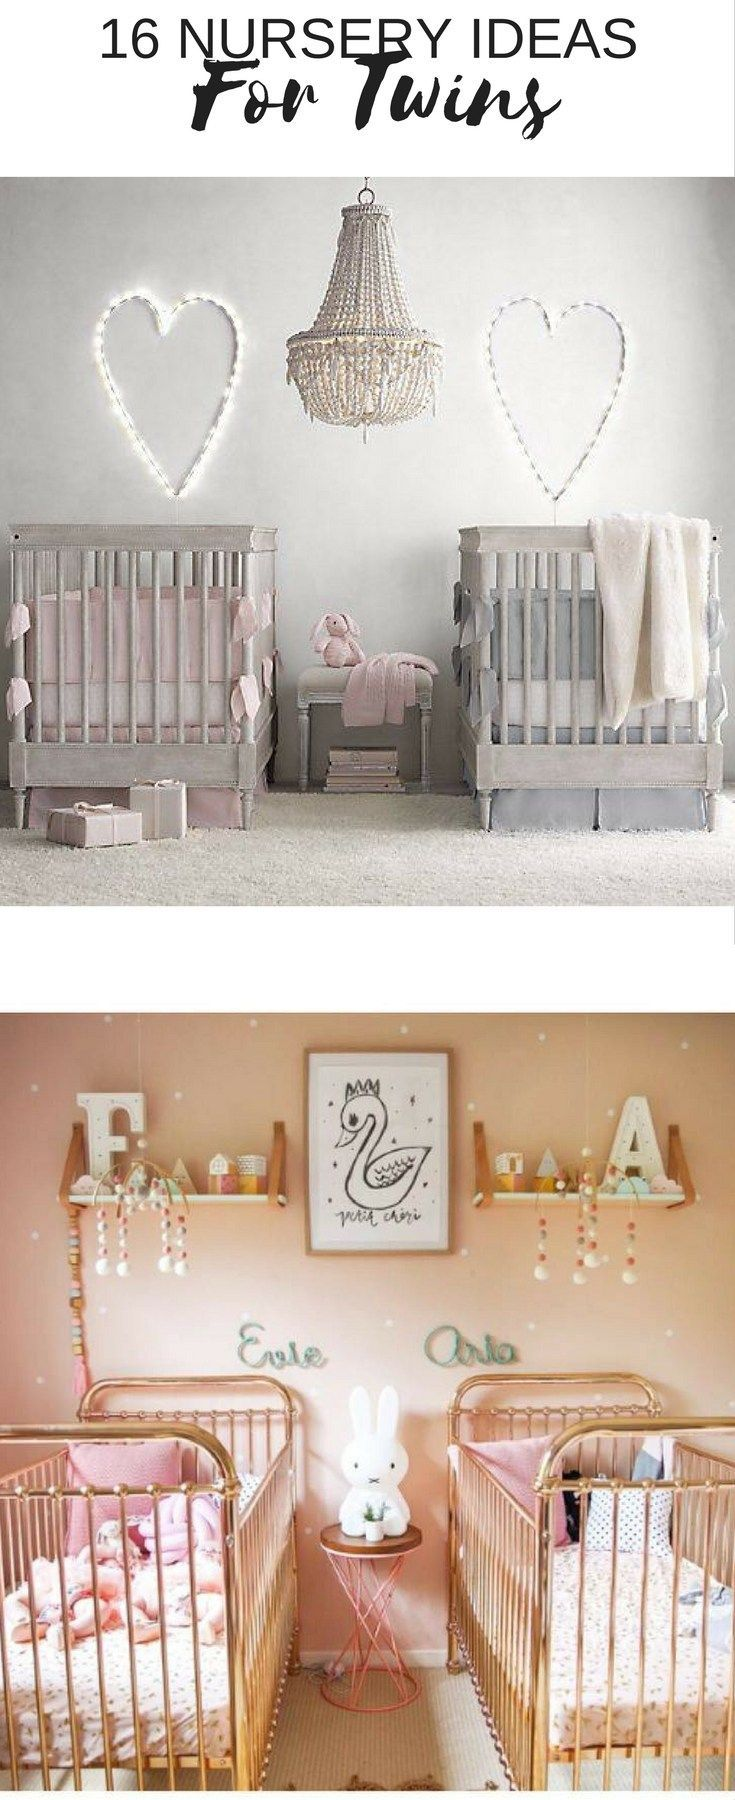 17 Gorgeous Twin Nursery Ideas